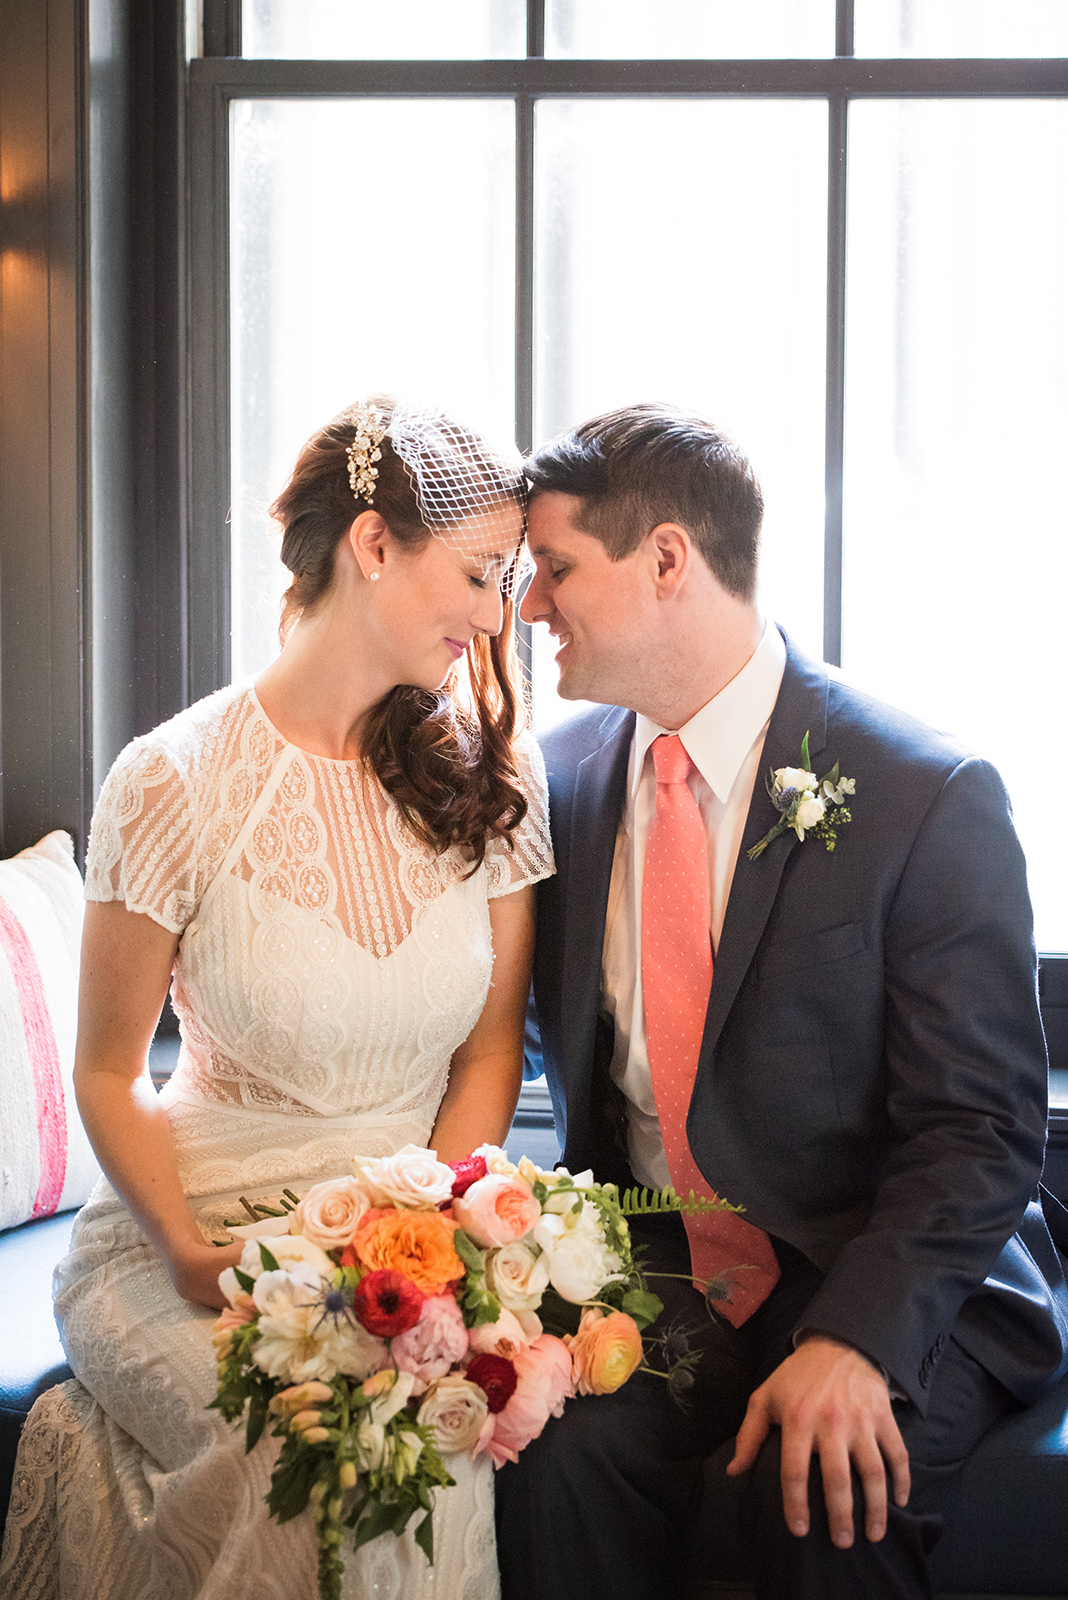 Bride and groom pose with vintage wedding reception decor for their school-themed vintage glam wedding at Ace Hotel in Pittsburgh. See more fun details at exhale-events.com!